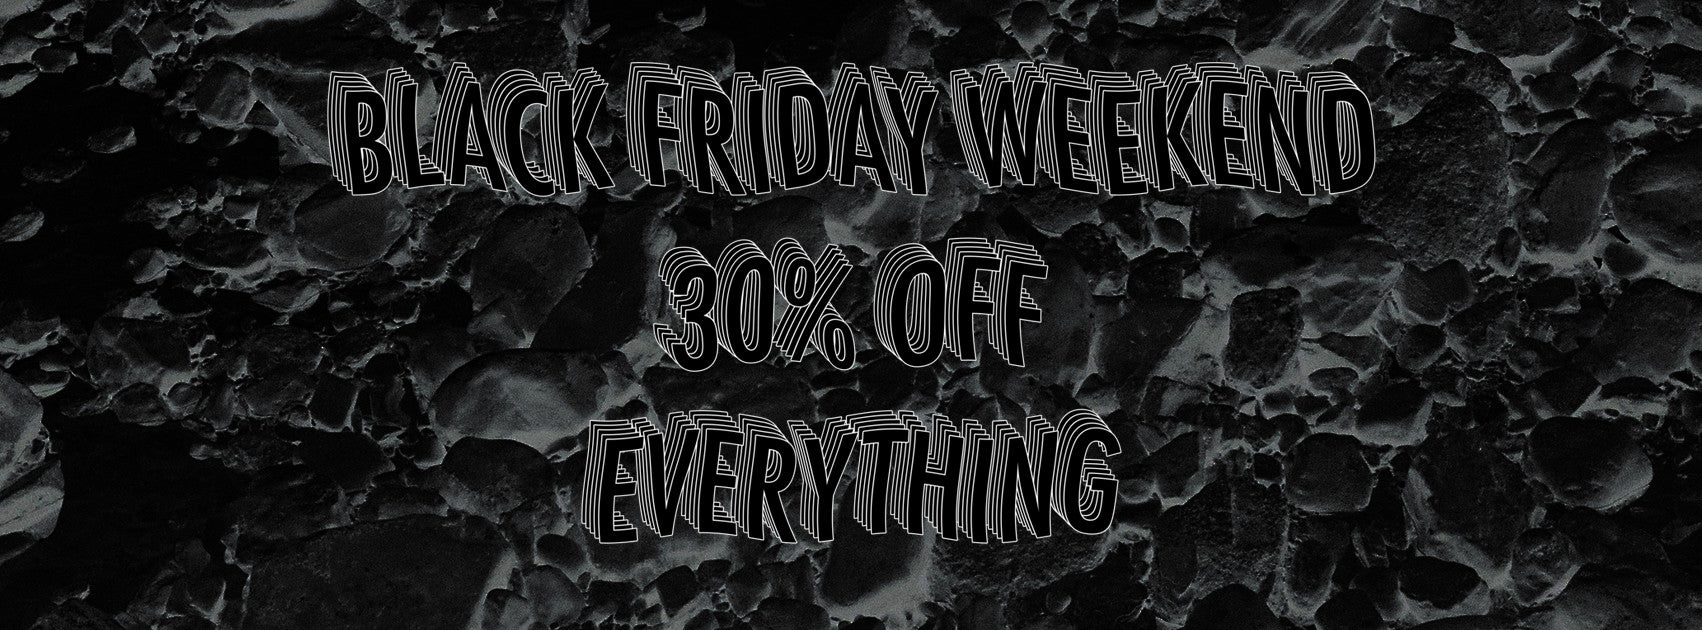 WASTED TALENT BOUTIQUE - BLACK FRIDAY